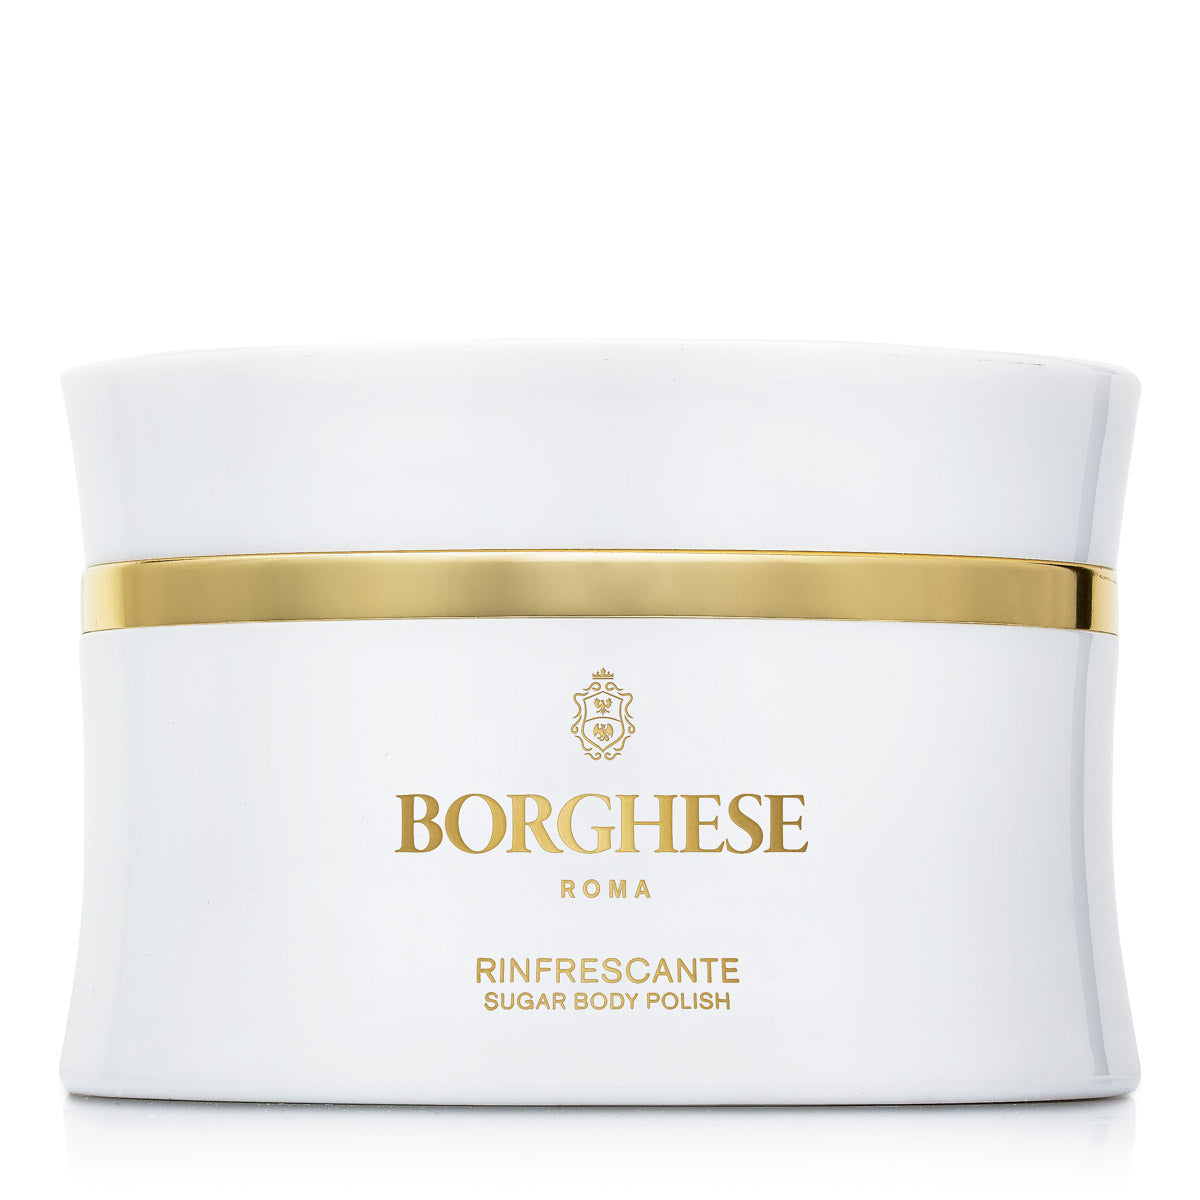 Rinfrescante Sugar Body Polish